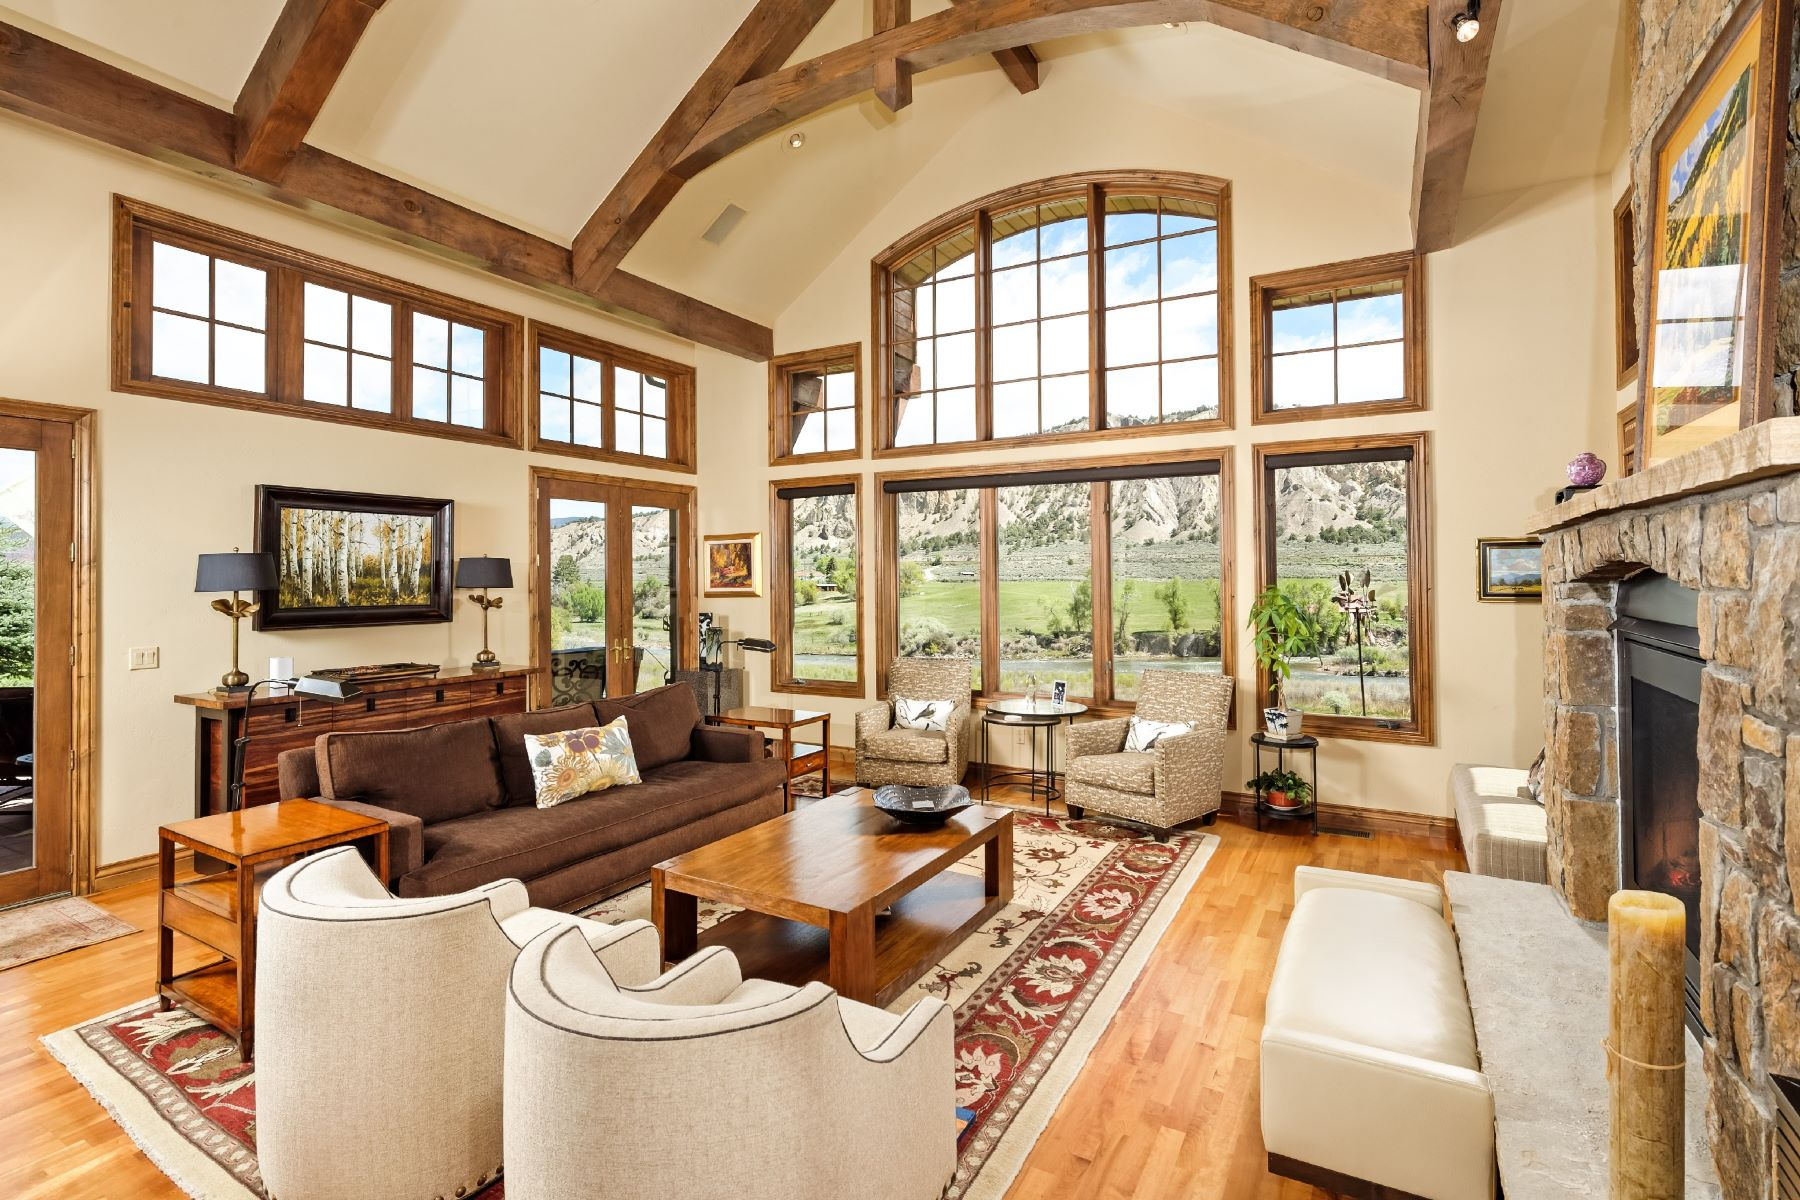 Single Family Home for Sale at Aspen Glen Club Lodge 0106 Club Lodge Drive, Carbondale, Colorado, 81623 United States